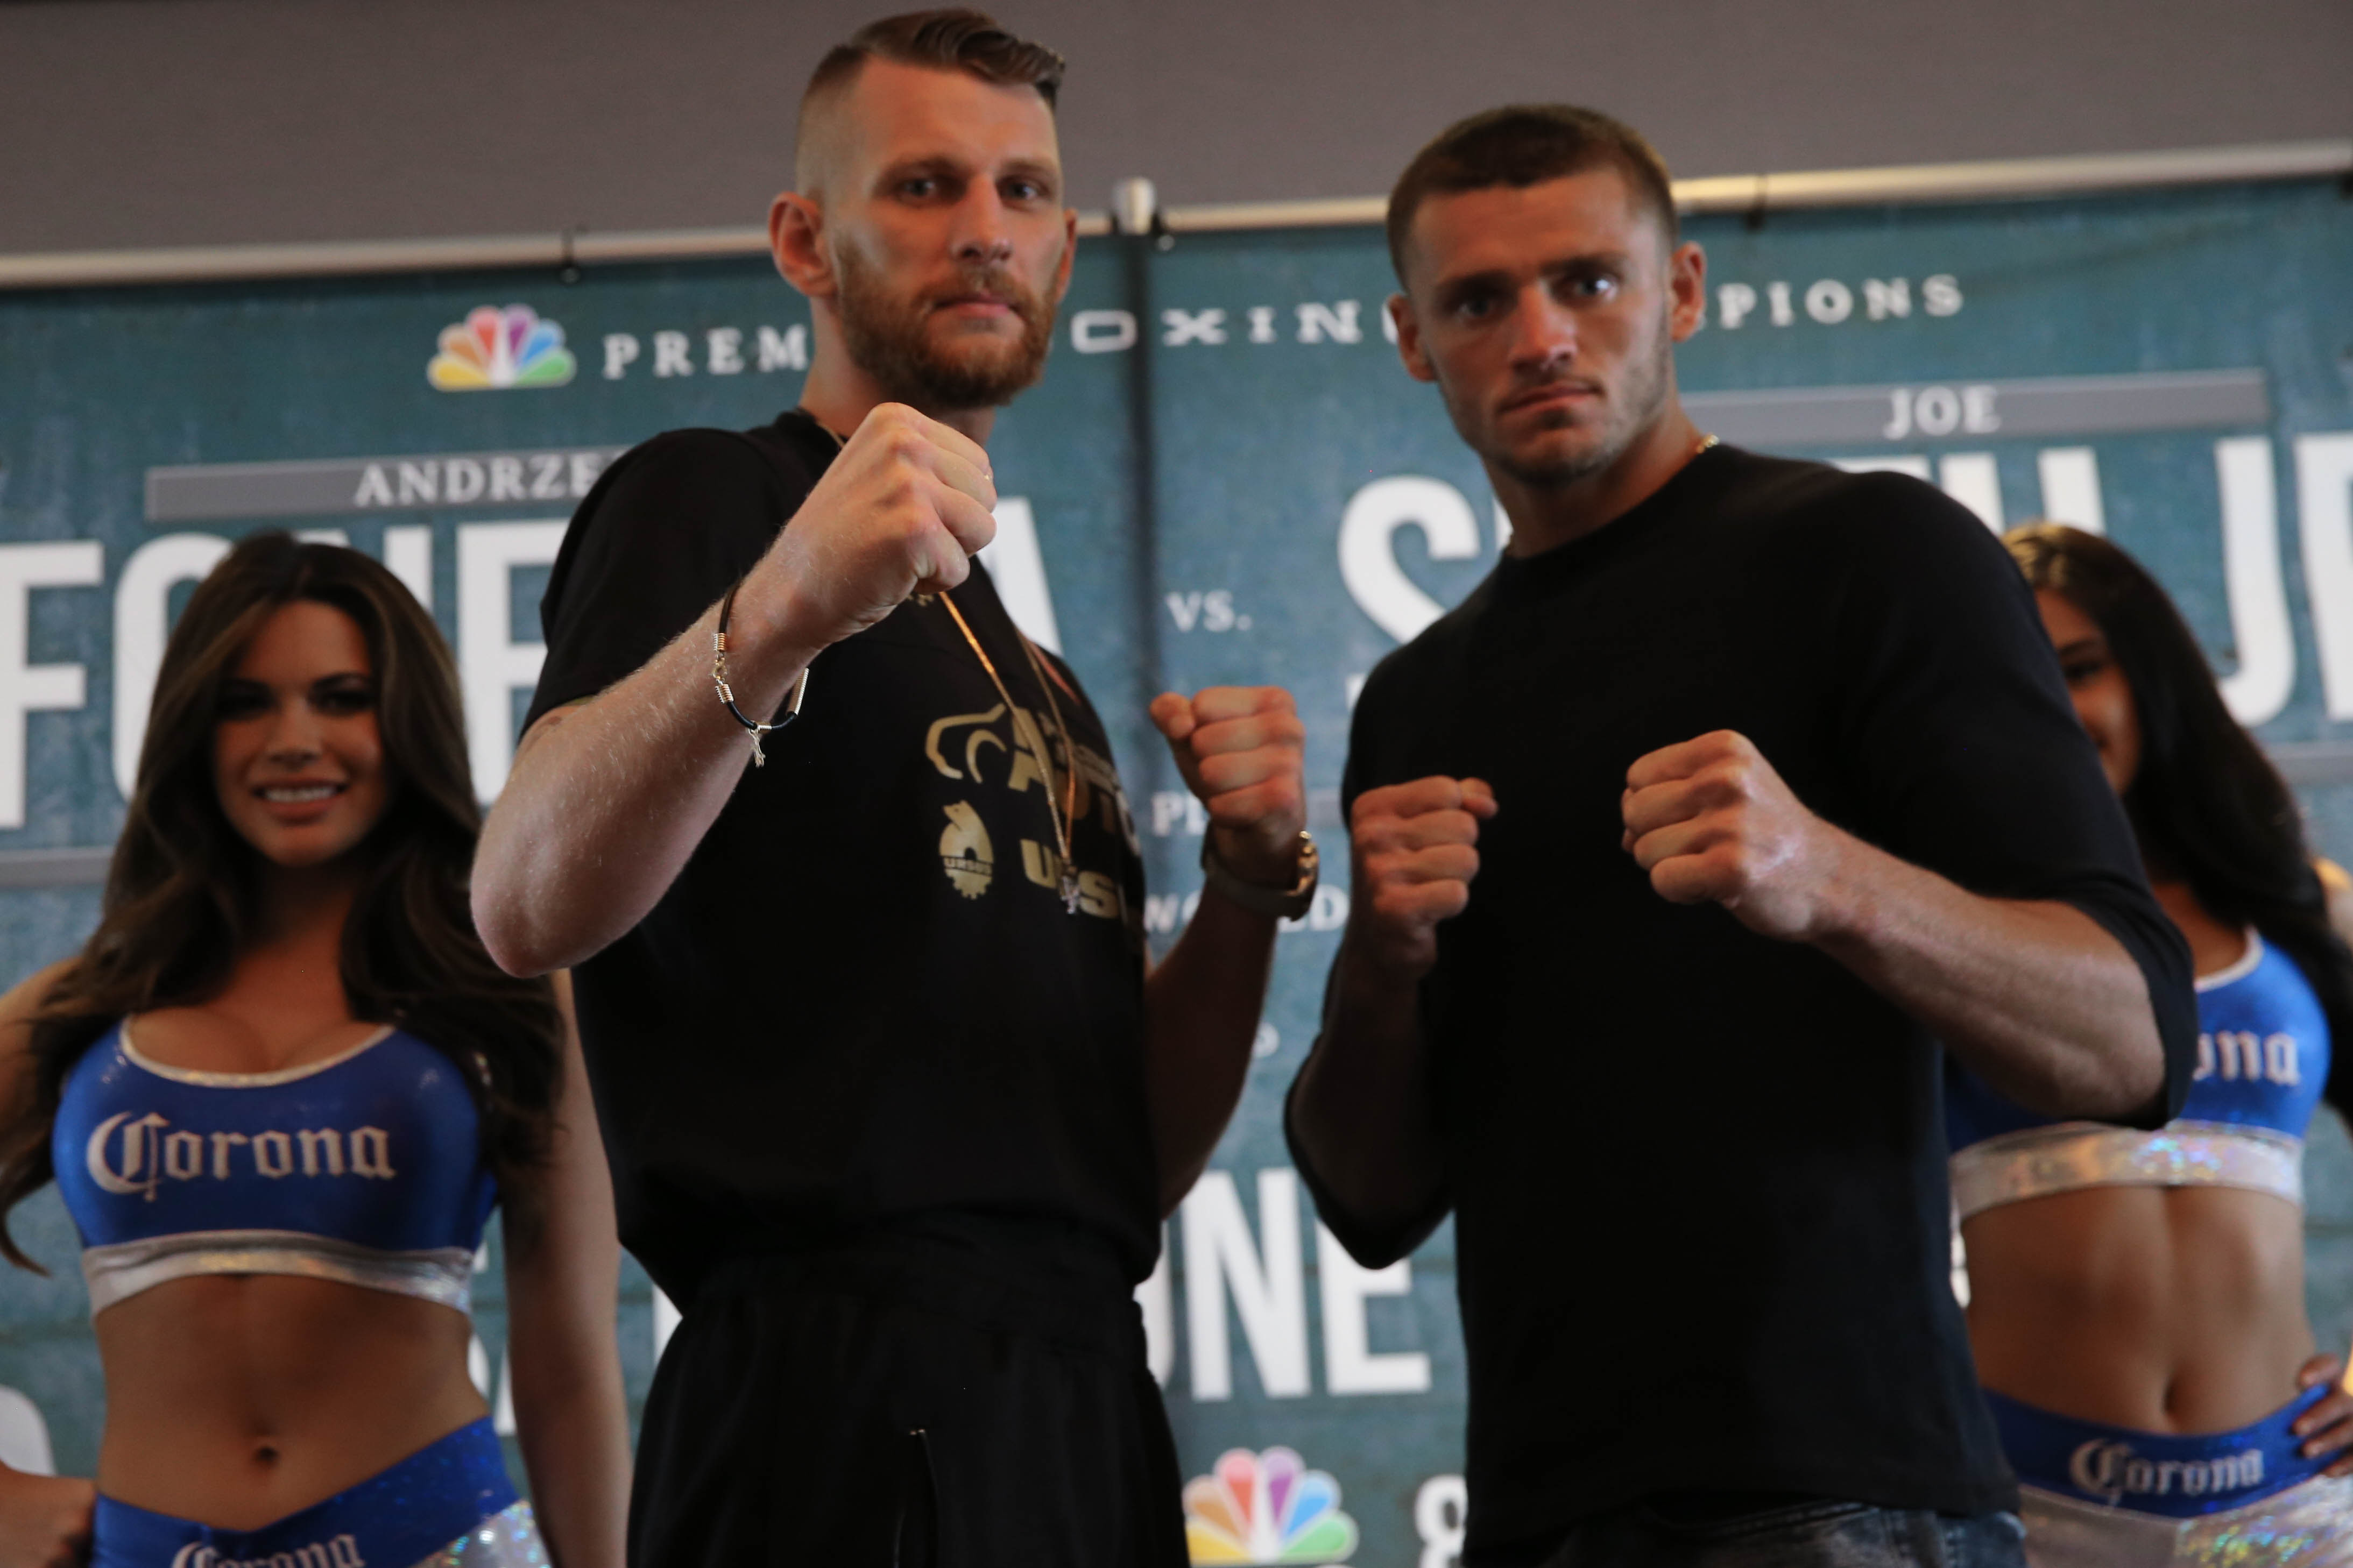 Fonfara vs Smith Jr